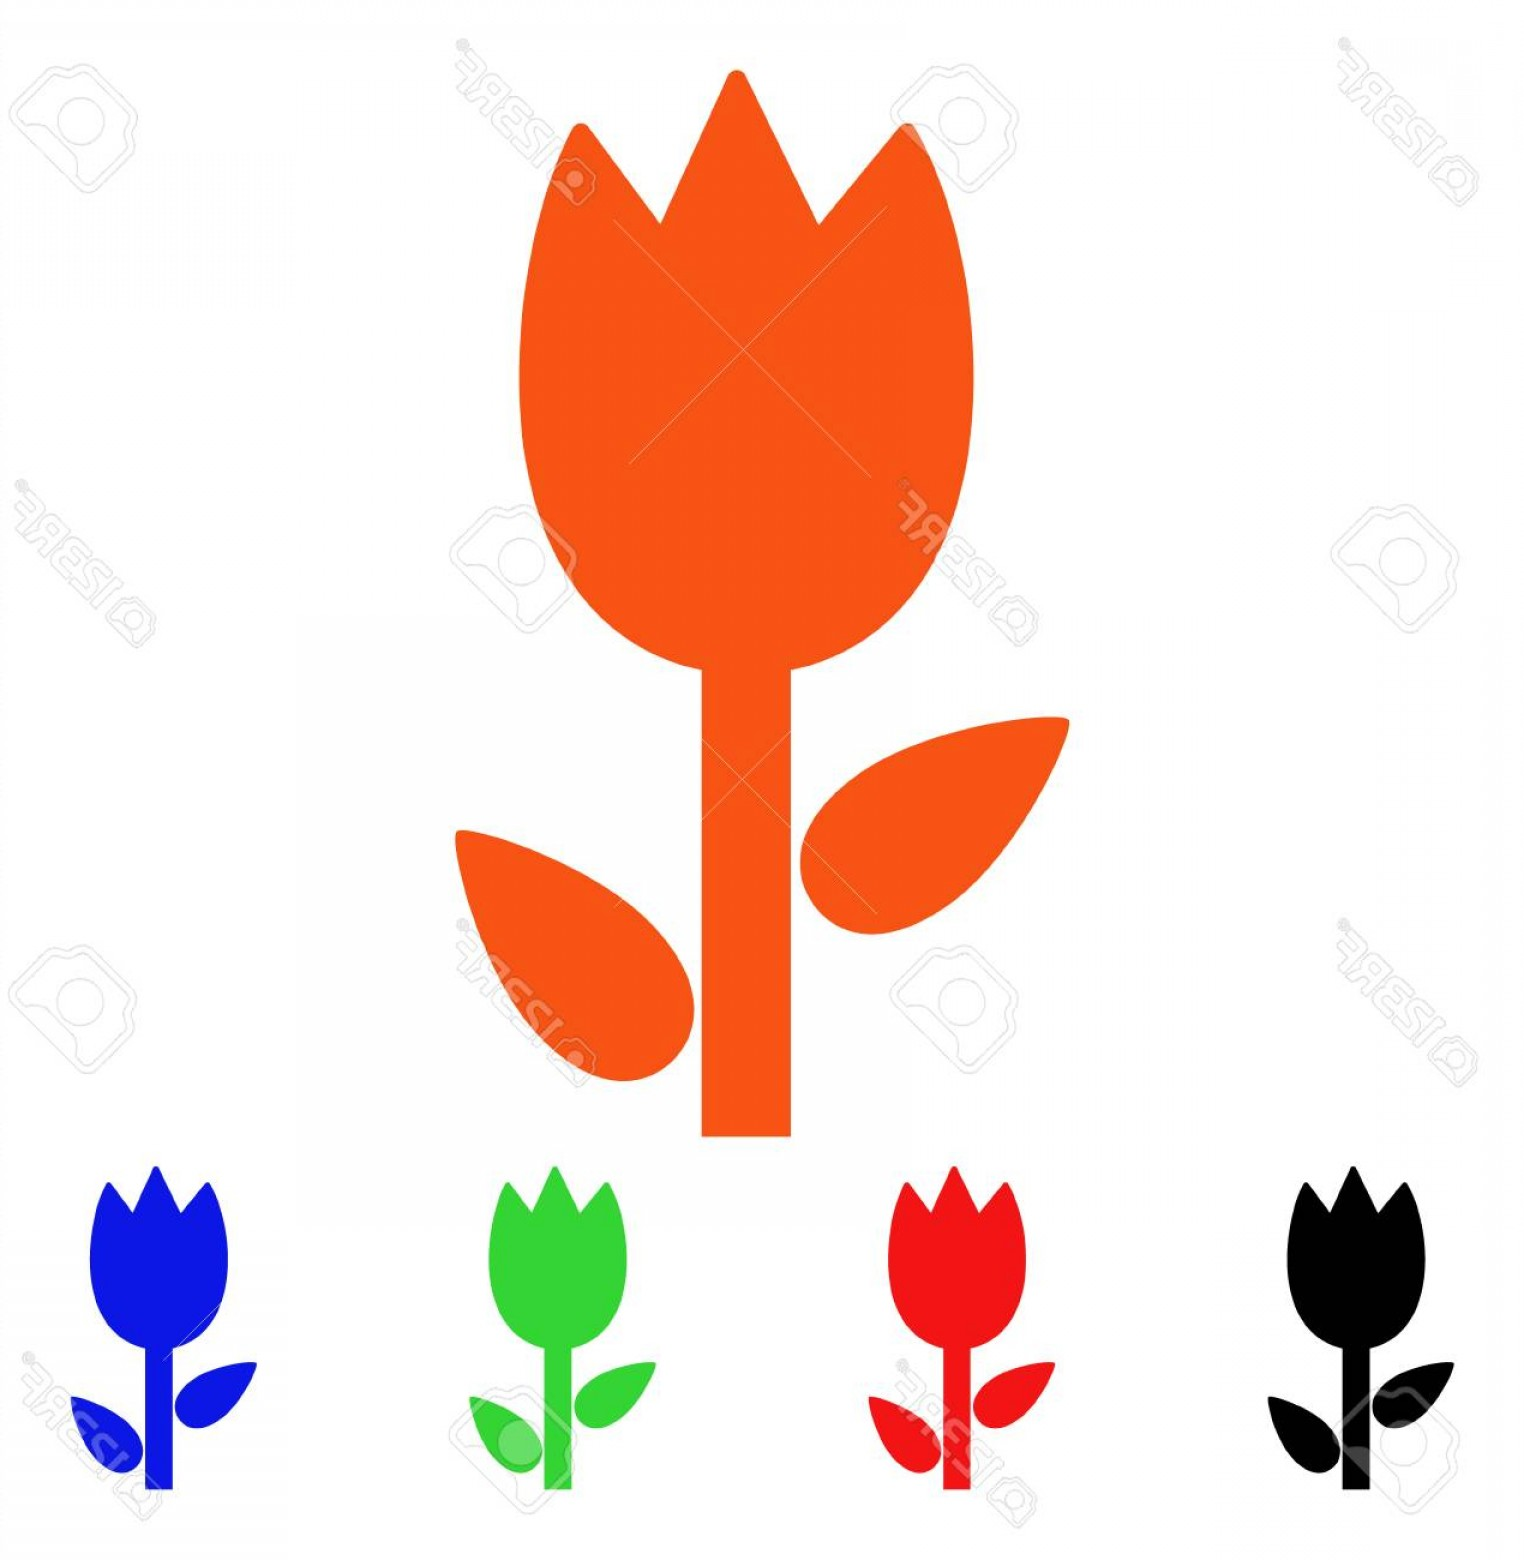 Tulip Icon Vector: Photostock Vector Tulip Icon Vector Illustration Style Is A Flat Iconic Tulip Symbol With Black Orange Red Green Blue